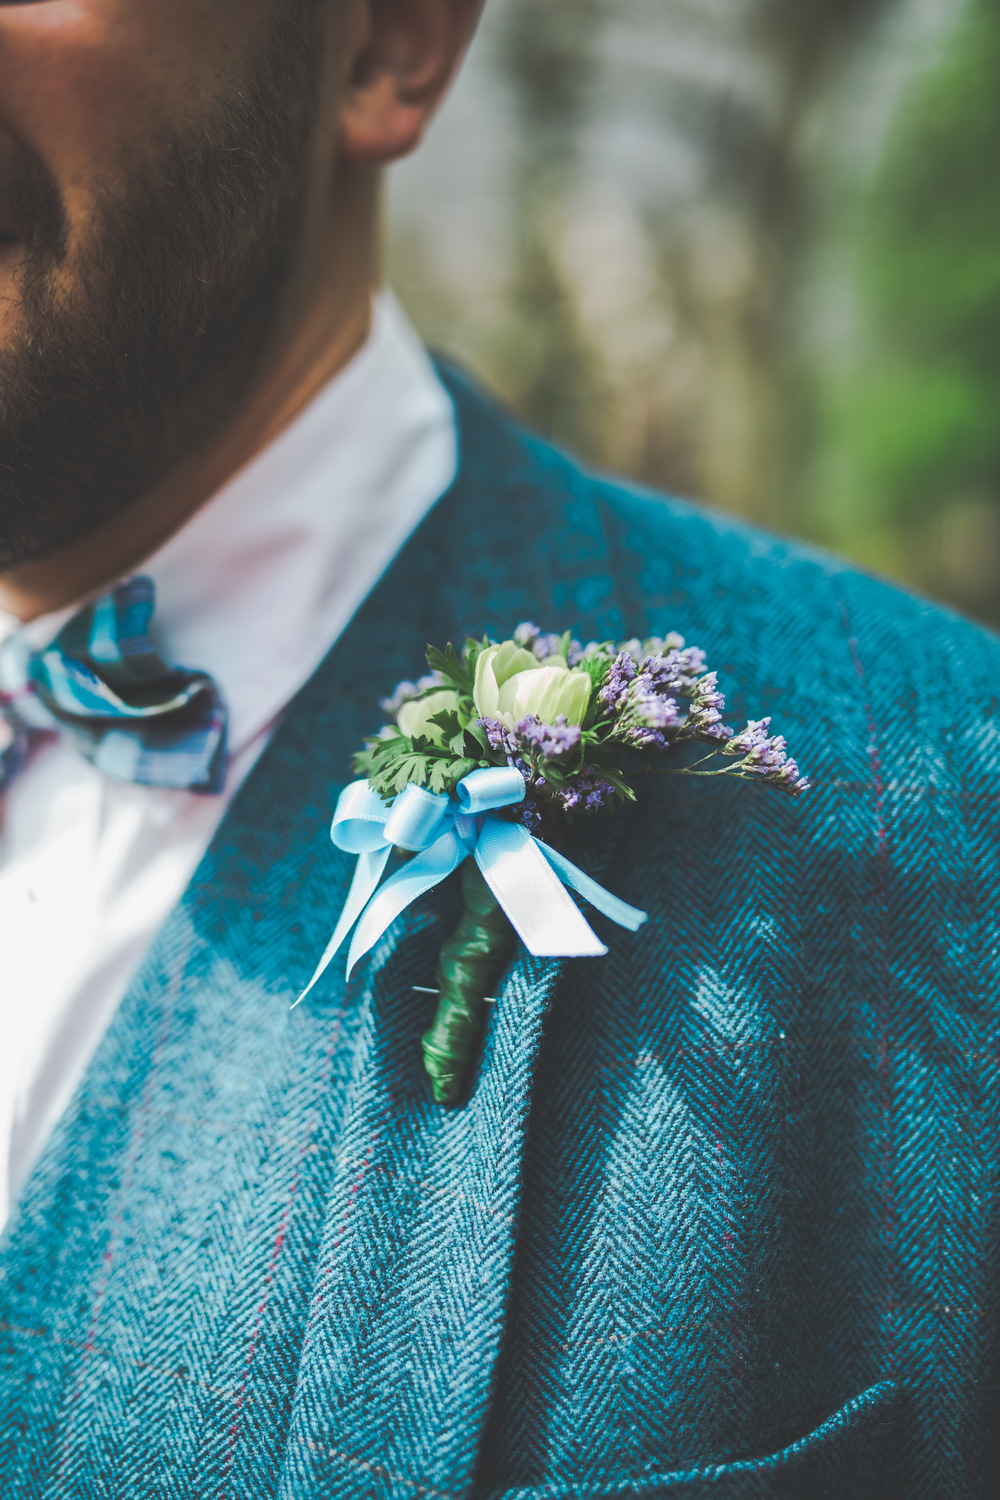 Cheshire wedding Photographer - detailed shots of groom's buttonhole